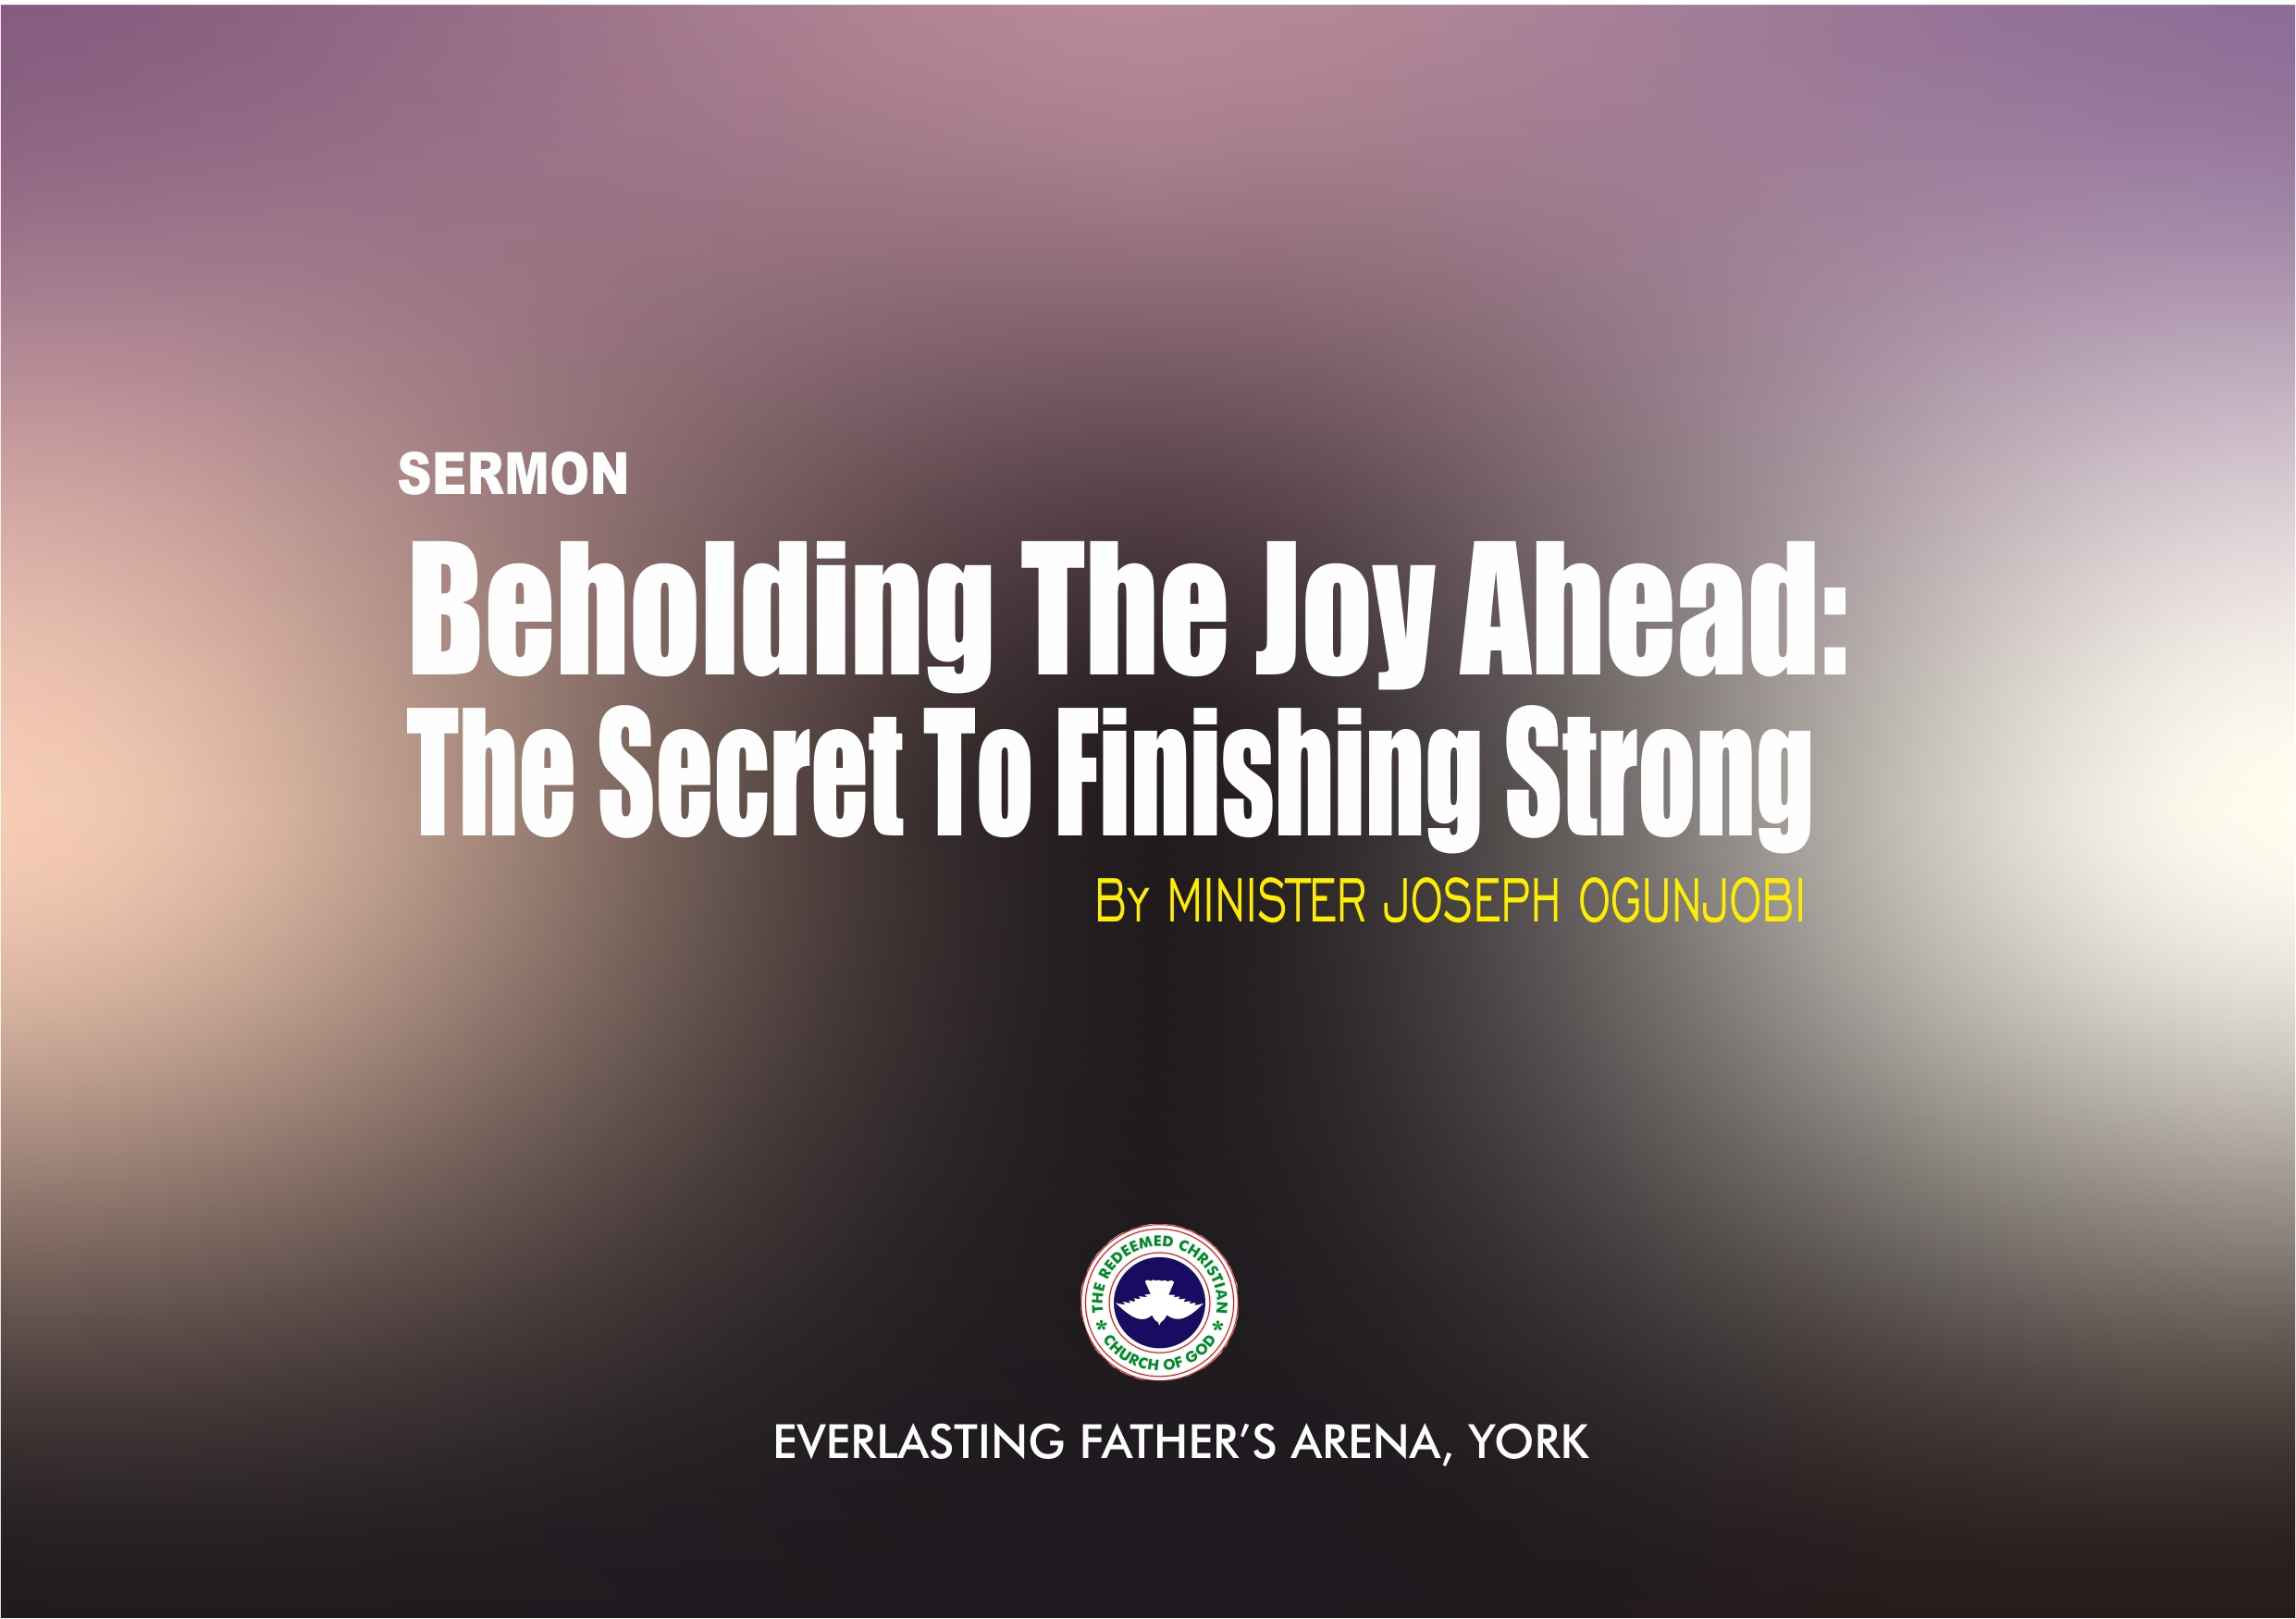 Beholding The Joy Ahead: The Secret to Finishing Strong, by Minister Joseph Ogunjobi